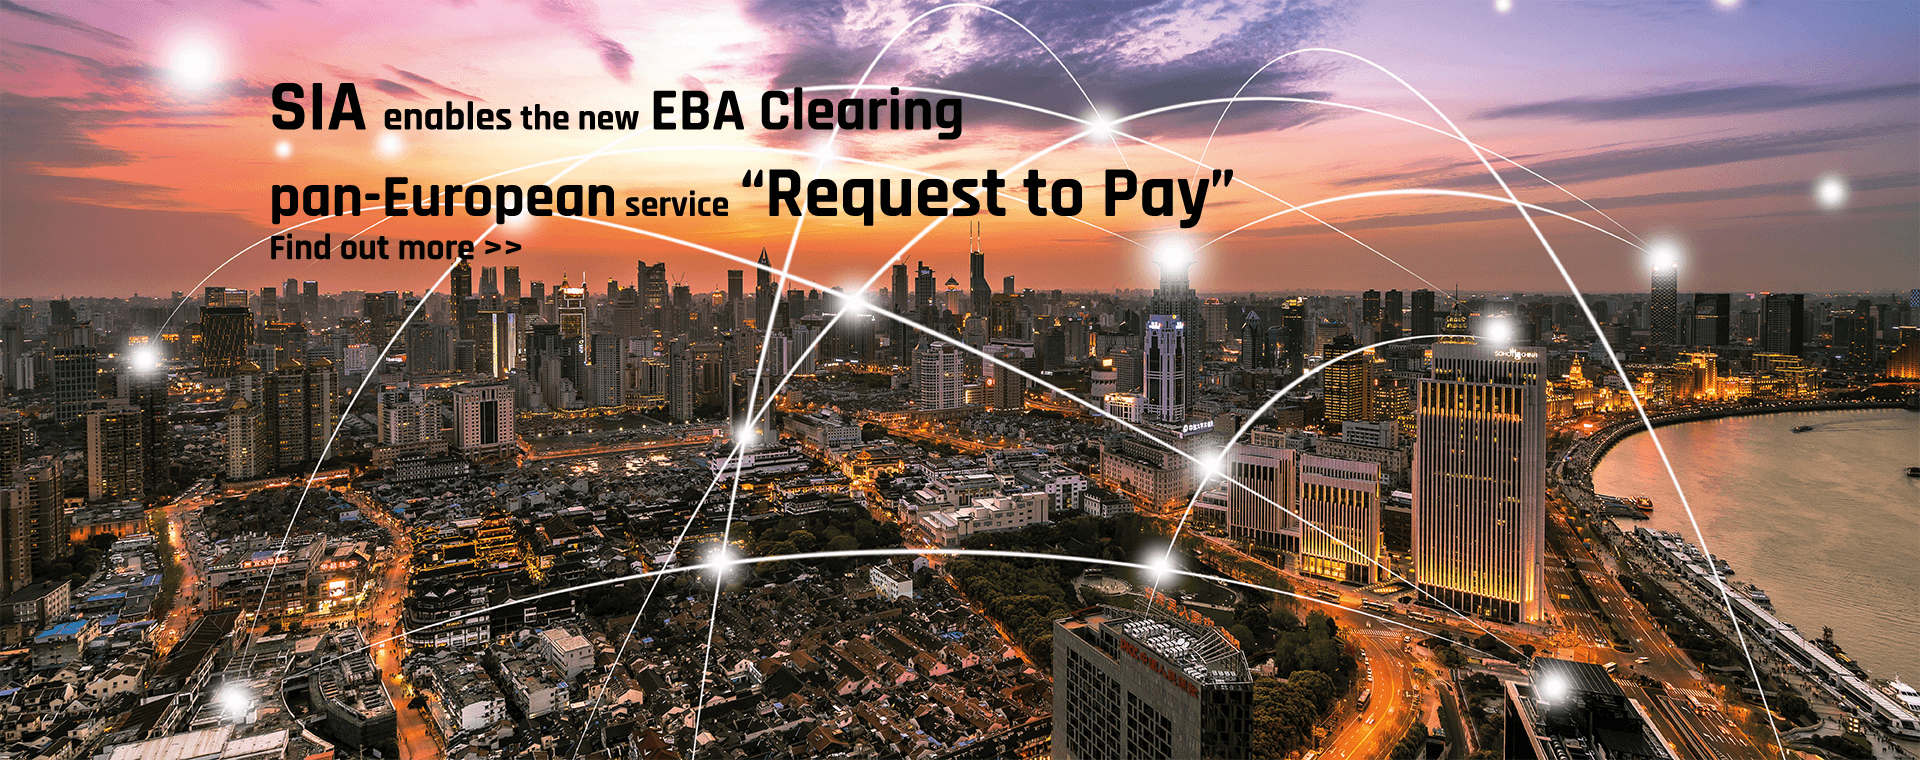 "SIA enables banks, corporates, P.A. bodies and fintechs for the new EBA Clearing pan-European service ""Request to Pay"""